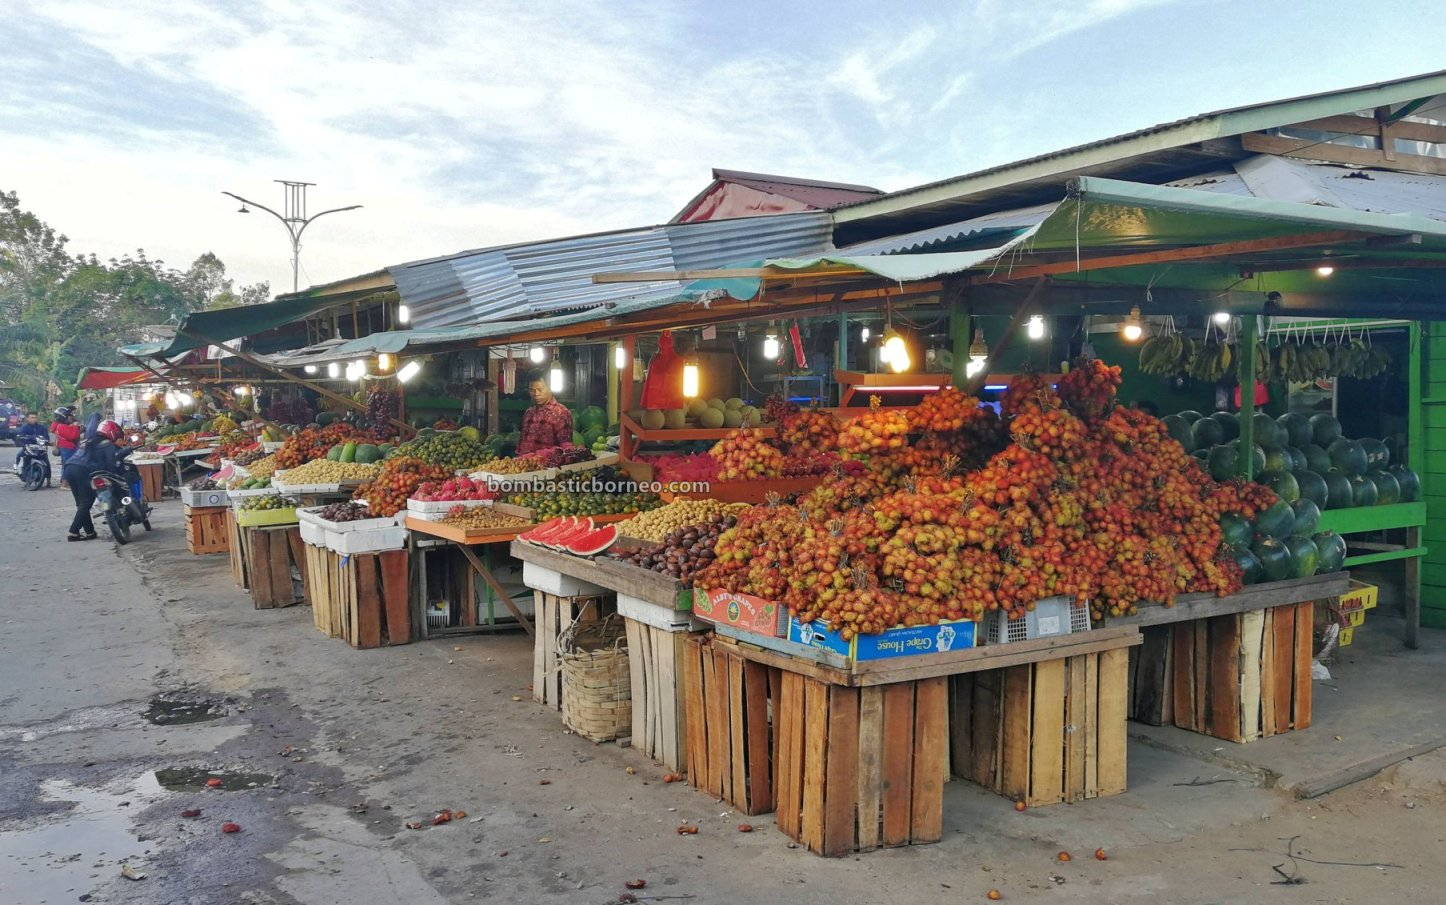 fruit market, floating house, authentic, traditional, backpackers, destination, Pinoh river, Obyek wisata, Tourism, tourist attraction, travel guide, Trans Borneo, 跨境婆罗洲游踪, 印尼西加里曼丹彬路